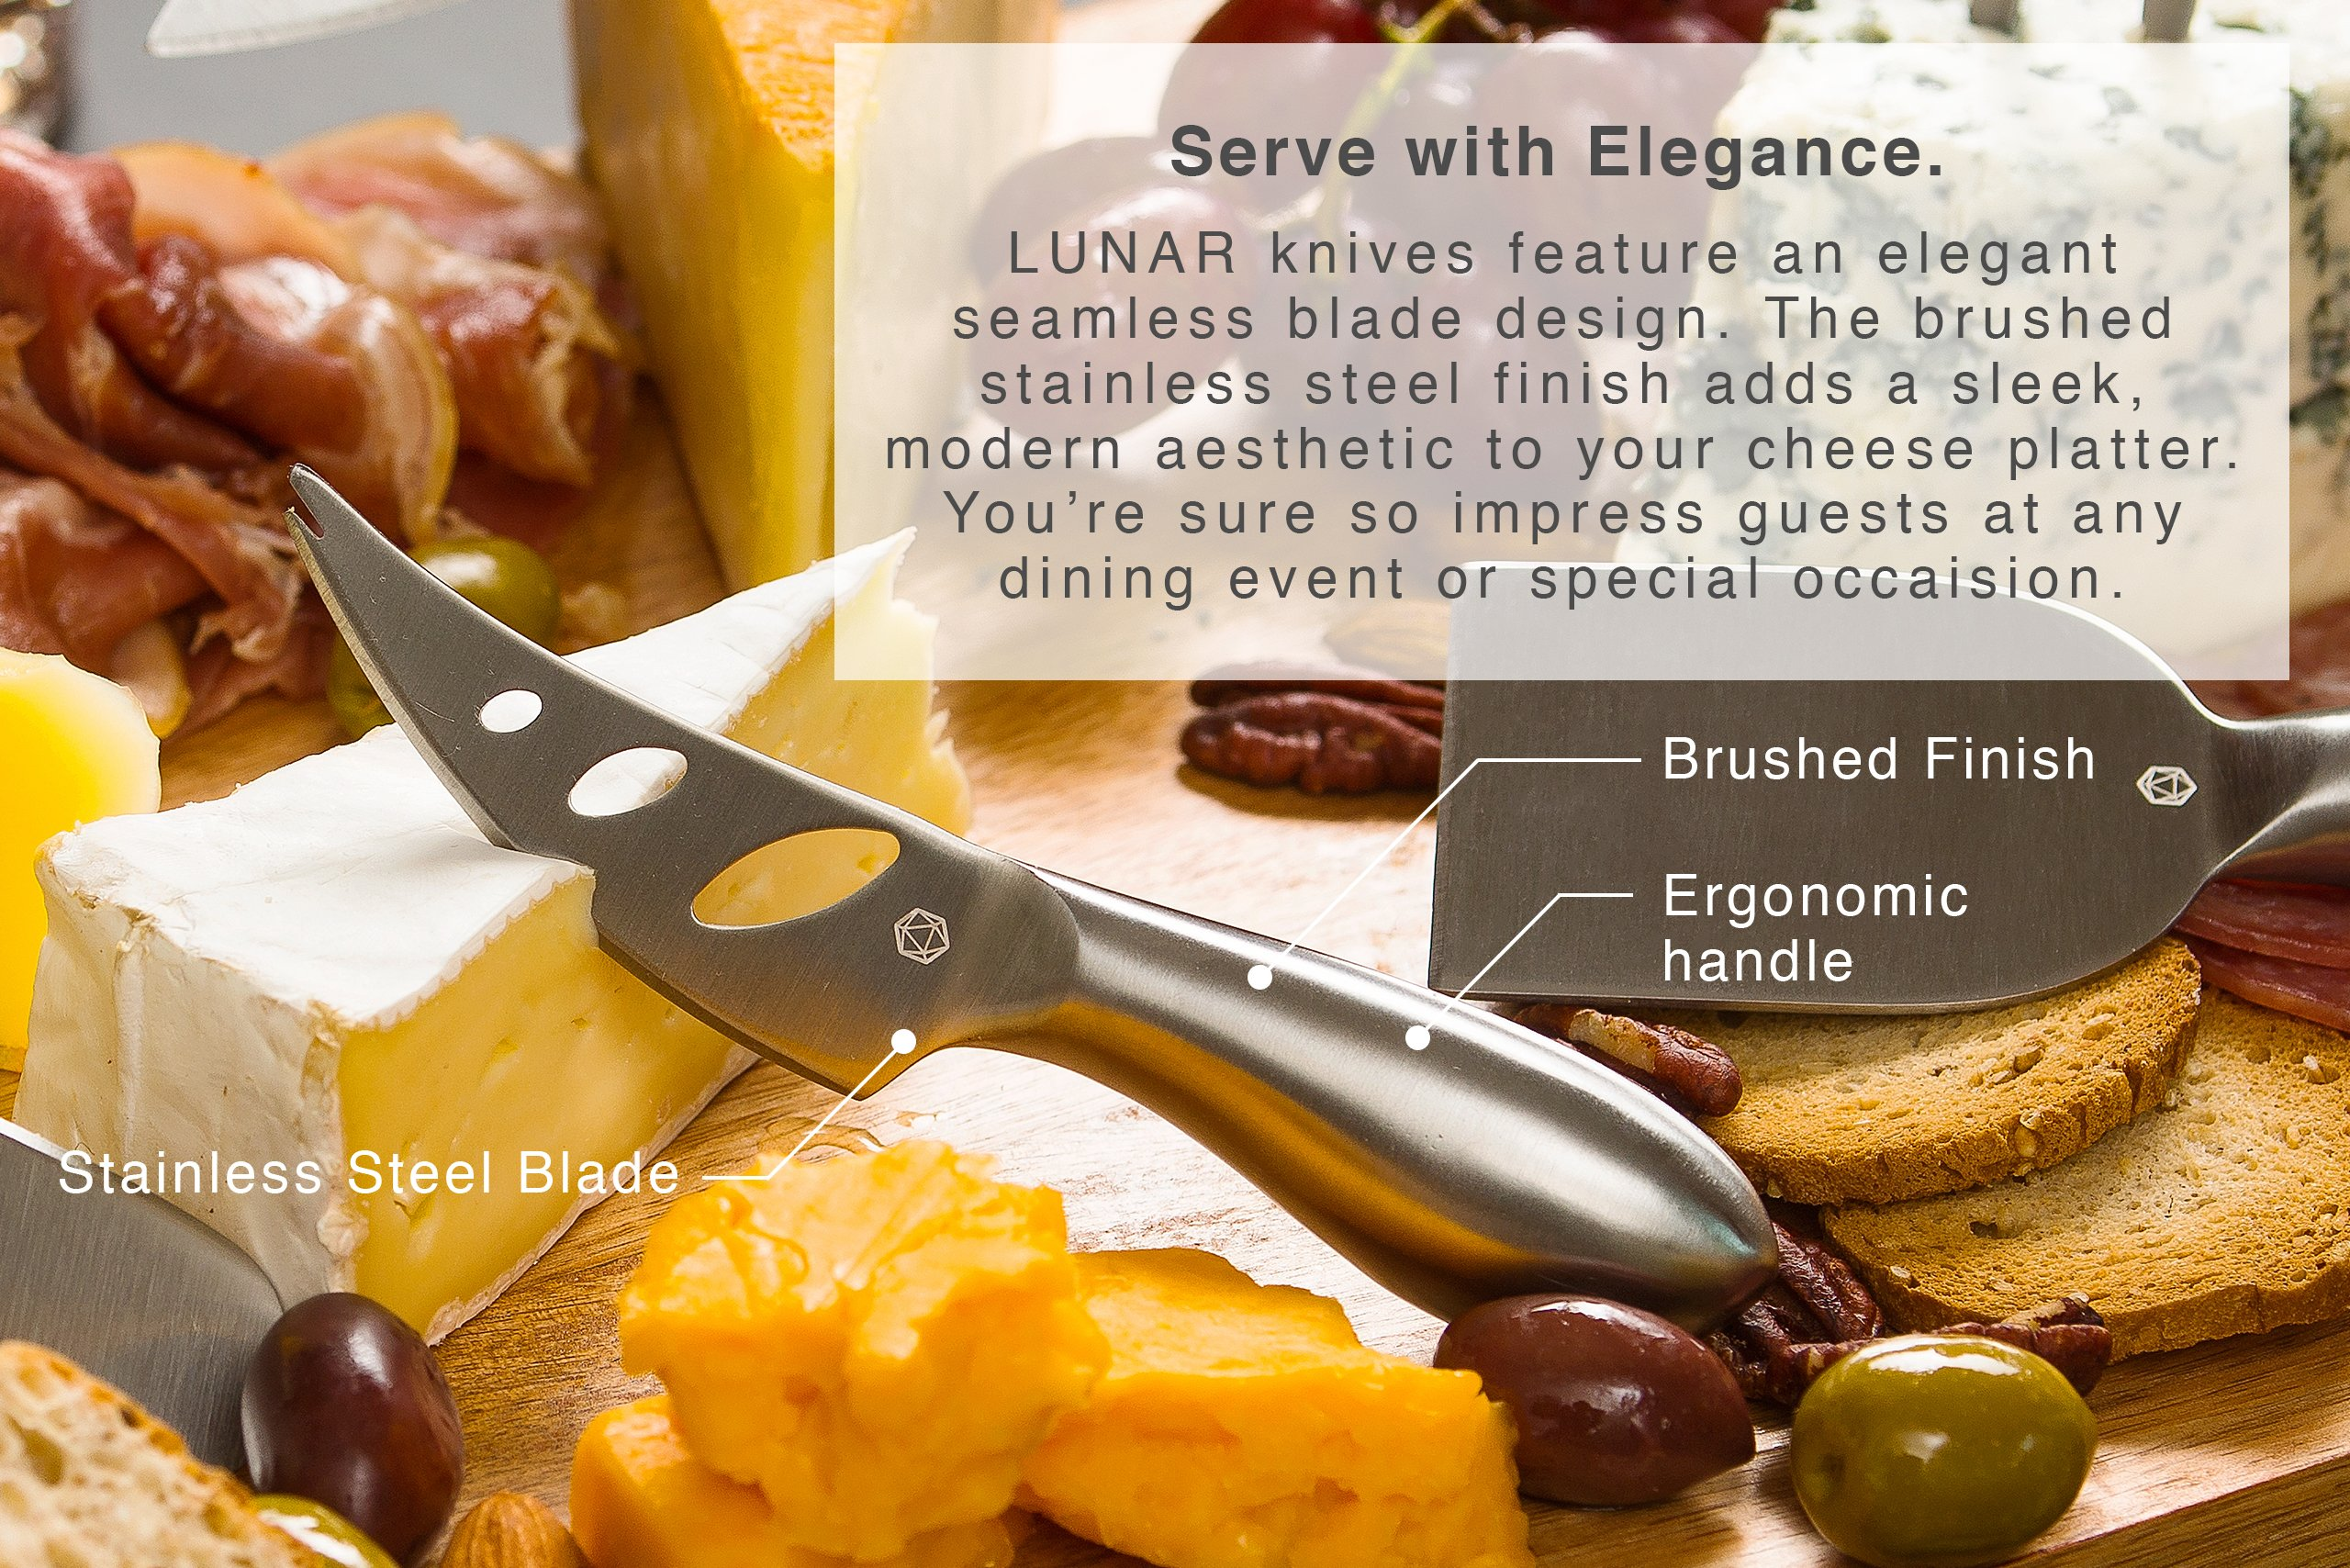 LUNAR Premium 6-Piece Cheese Knife Set - Complete Stainless Steel Cheese Knives Collection by ICOSA Living (Image #3)